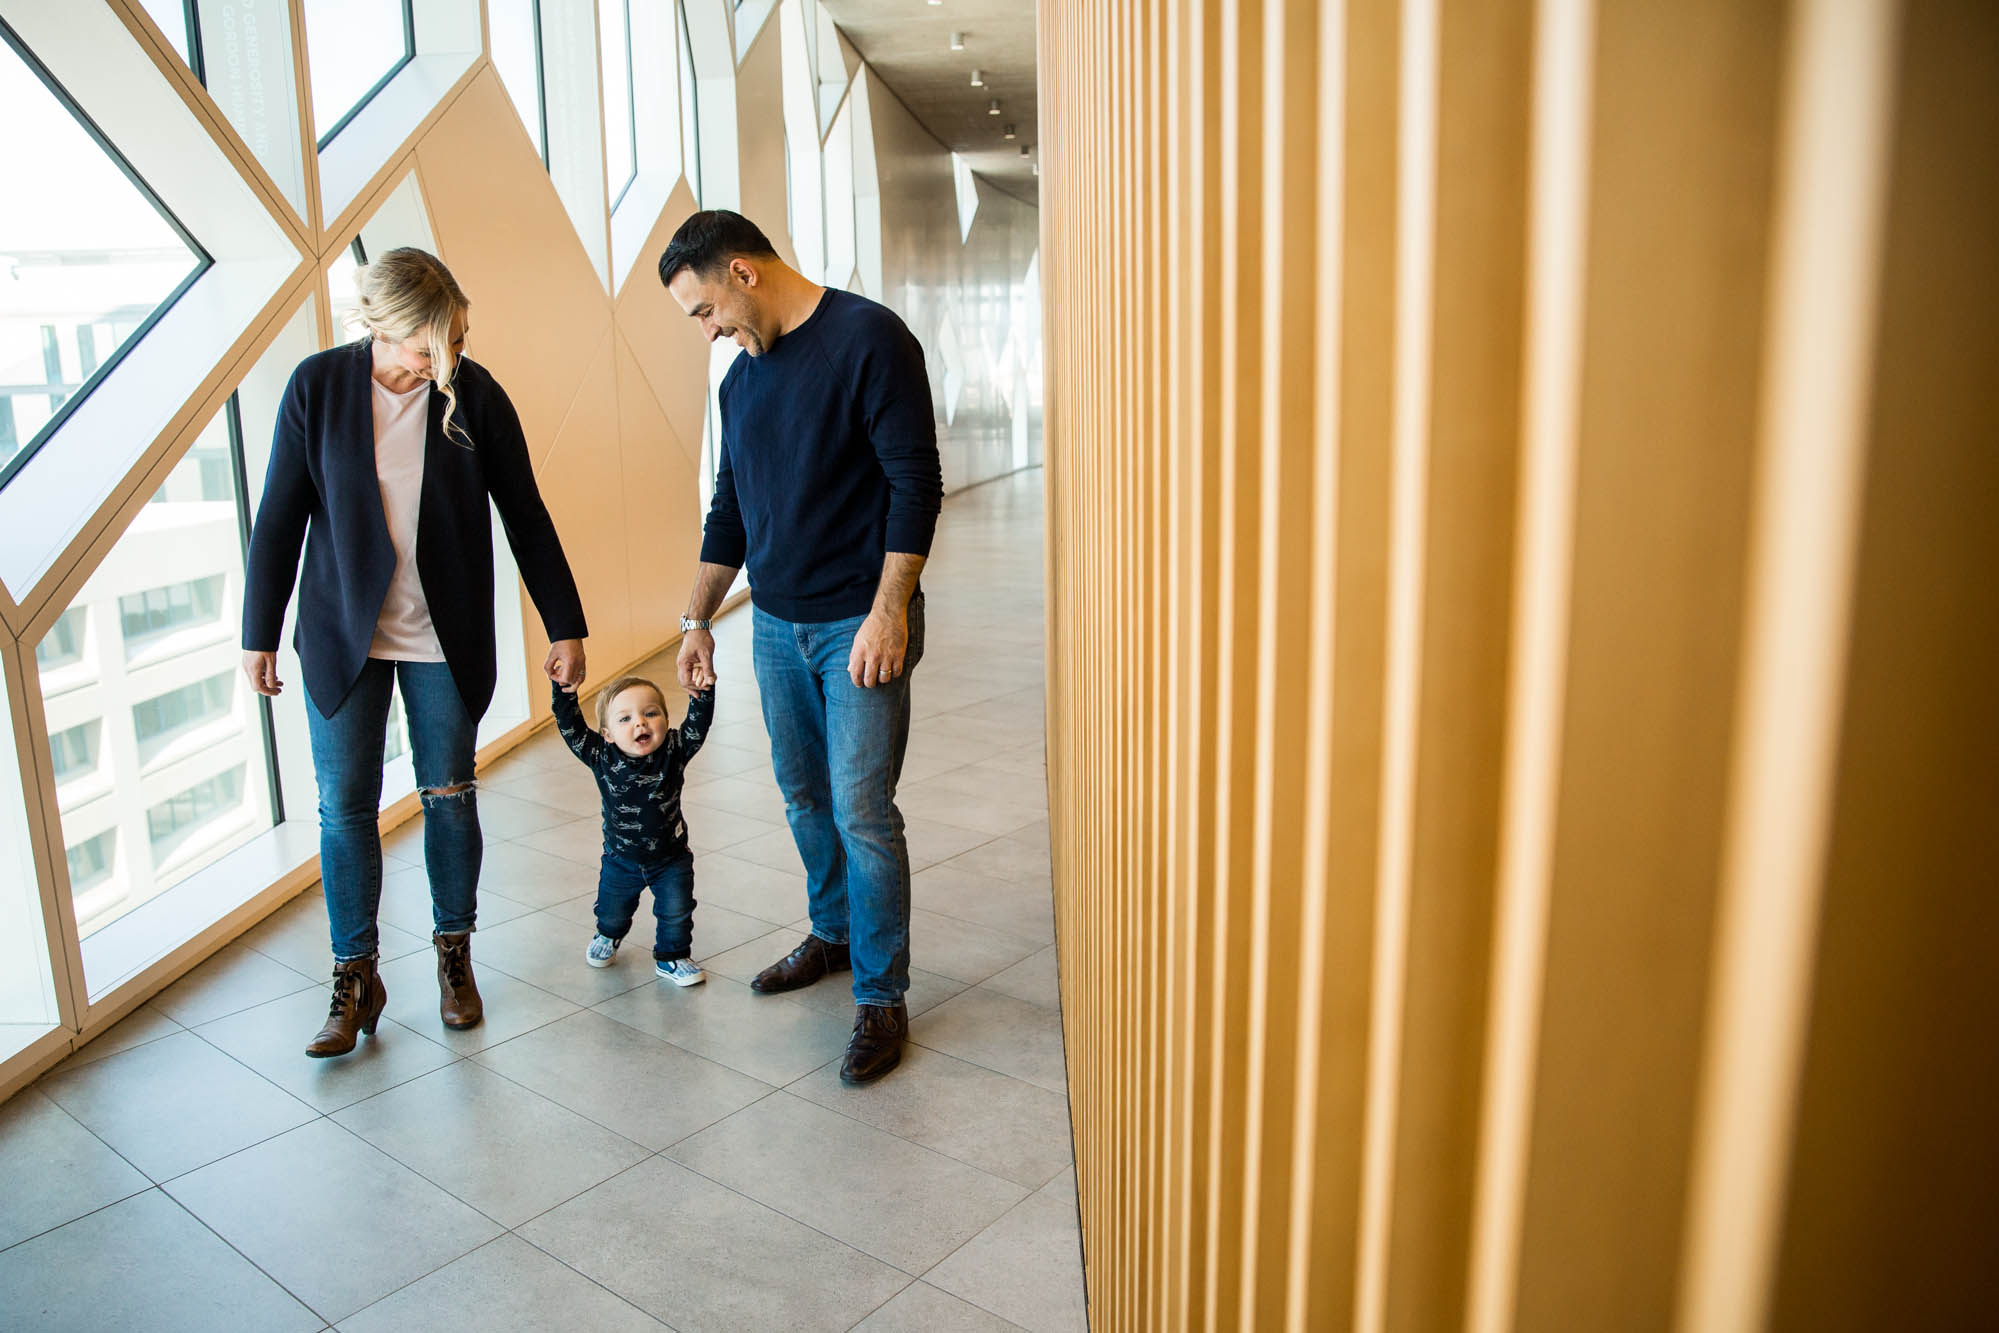 Family photography session at the Calgary Central Library